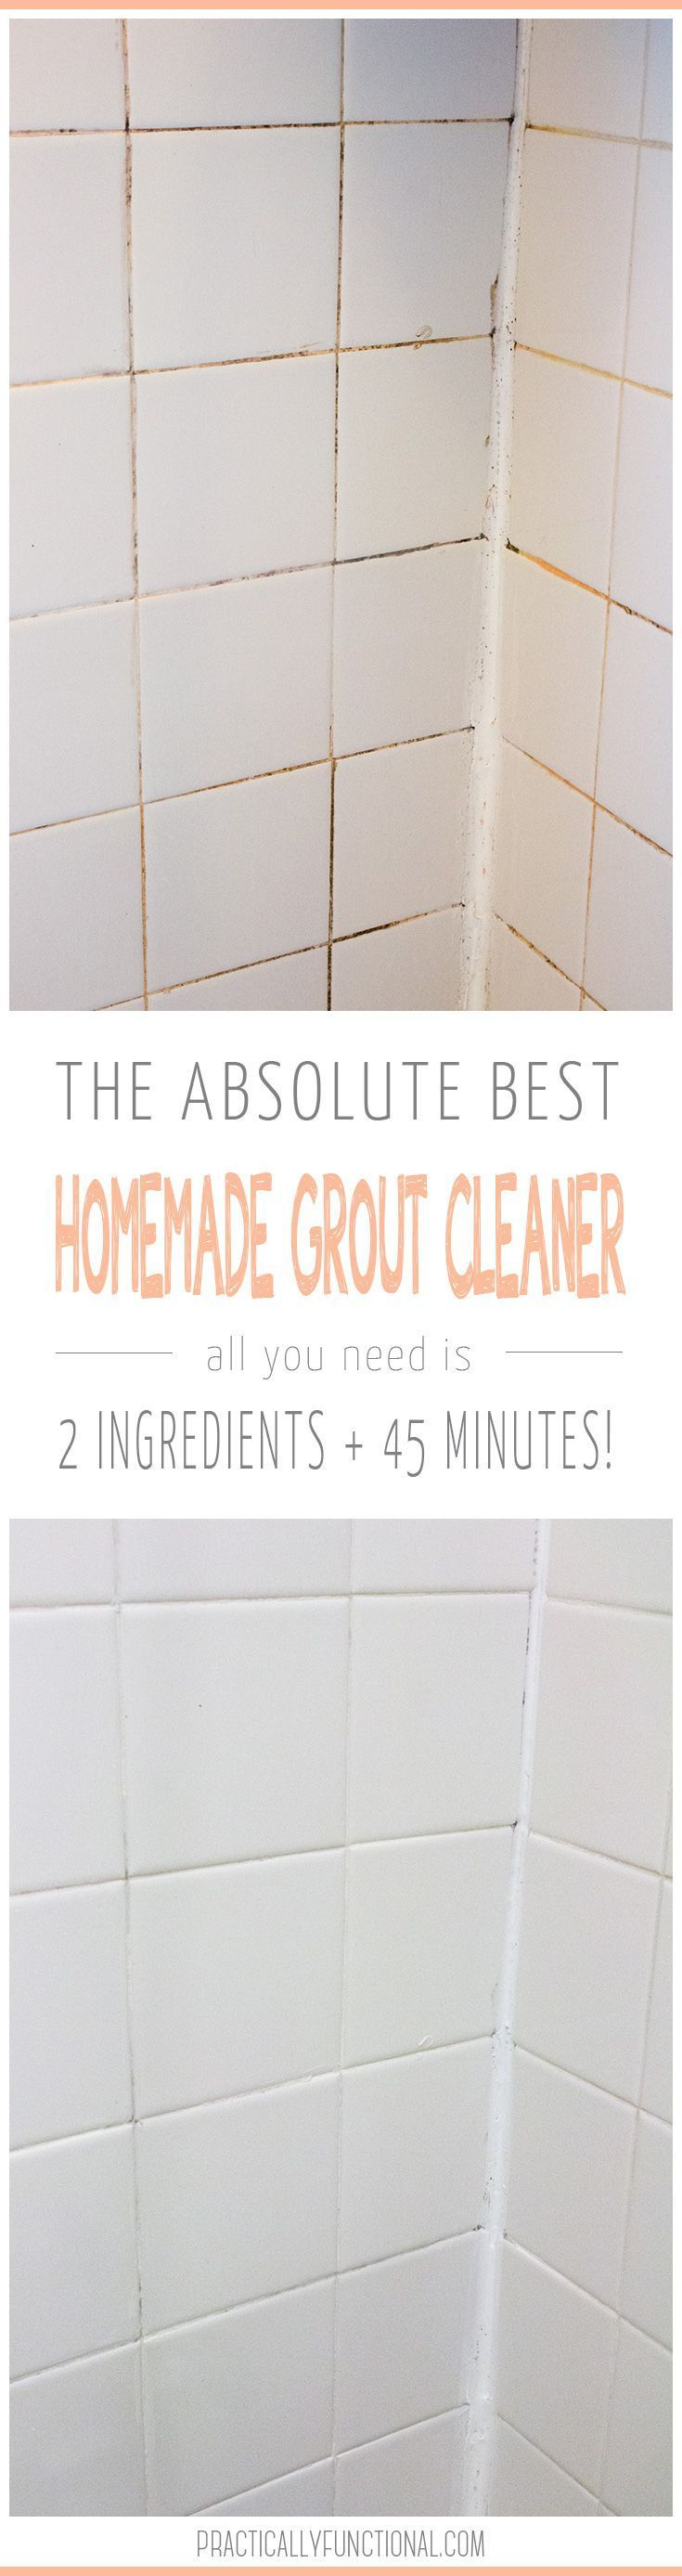 409 best Homemade Cleaning Products images on Pinterest | Cleaning ...